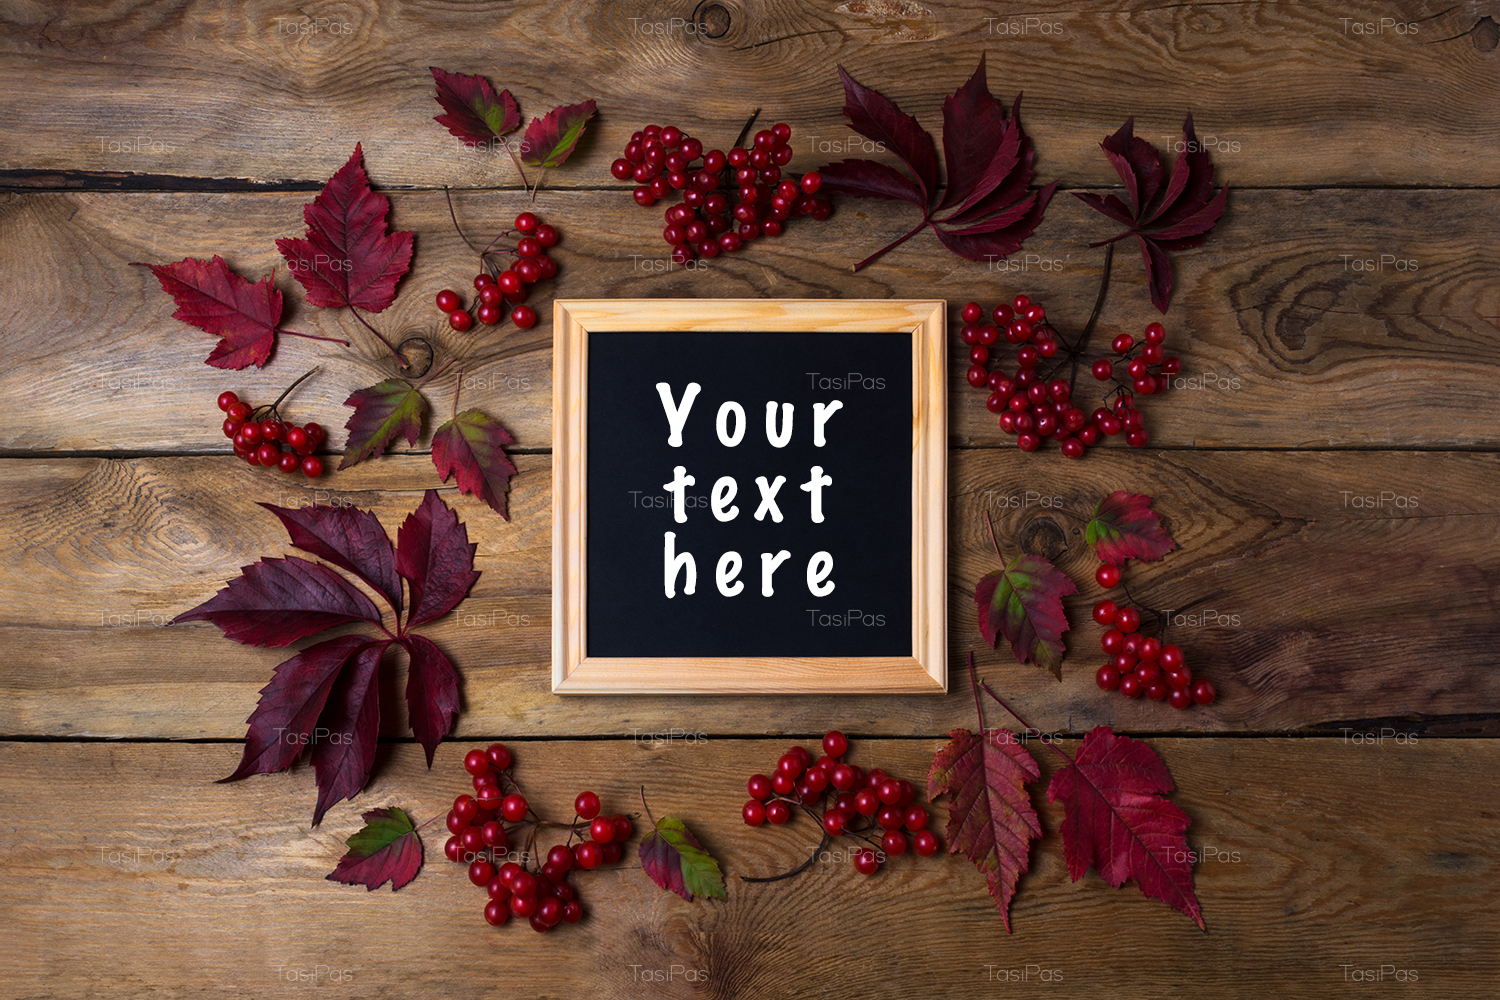 Rustic square frame mockup with viburnum berries example image 3